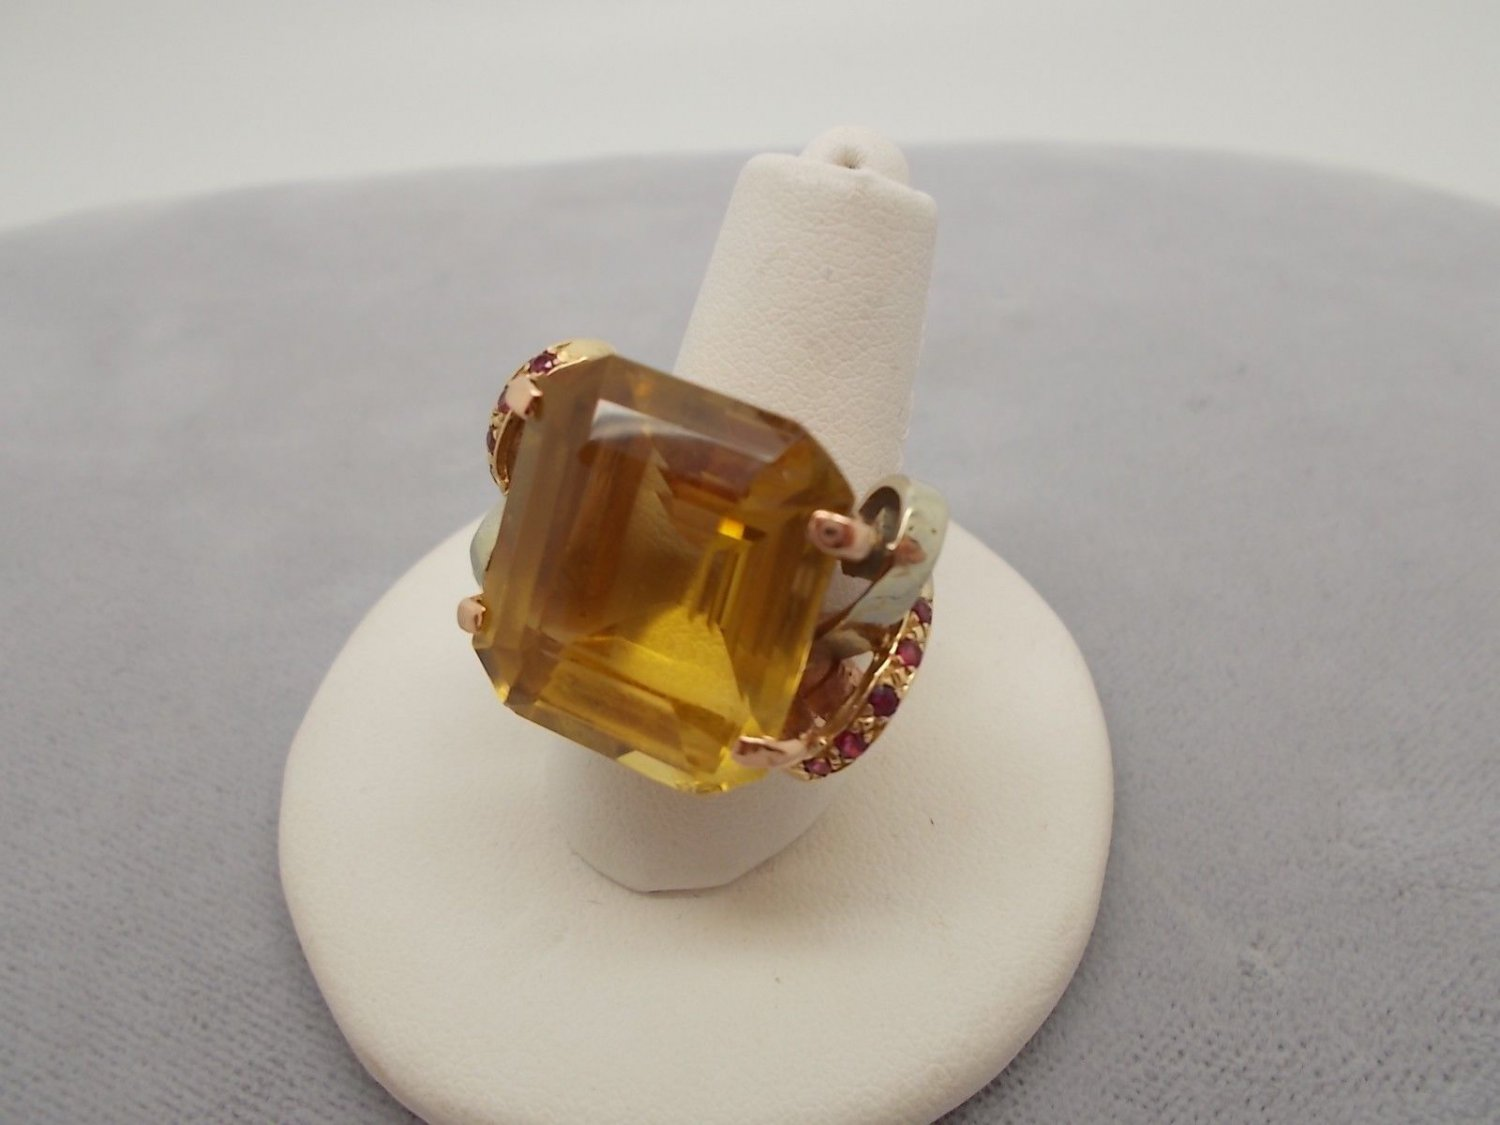 14K Gold Retro Ring with Large Genuine Natural Citrine and Rubies (#653)